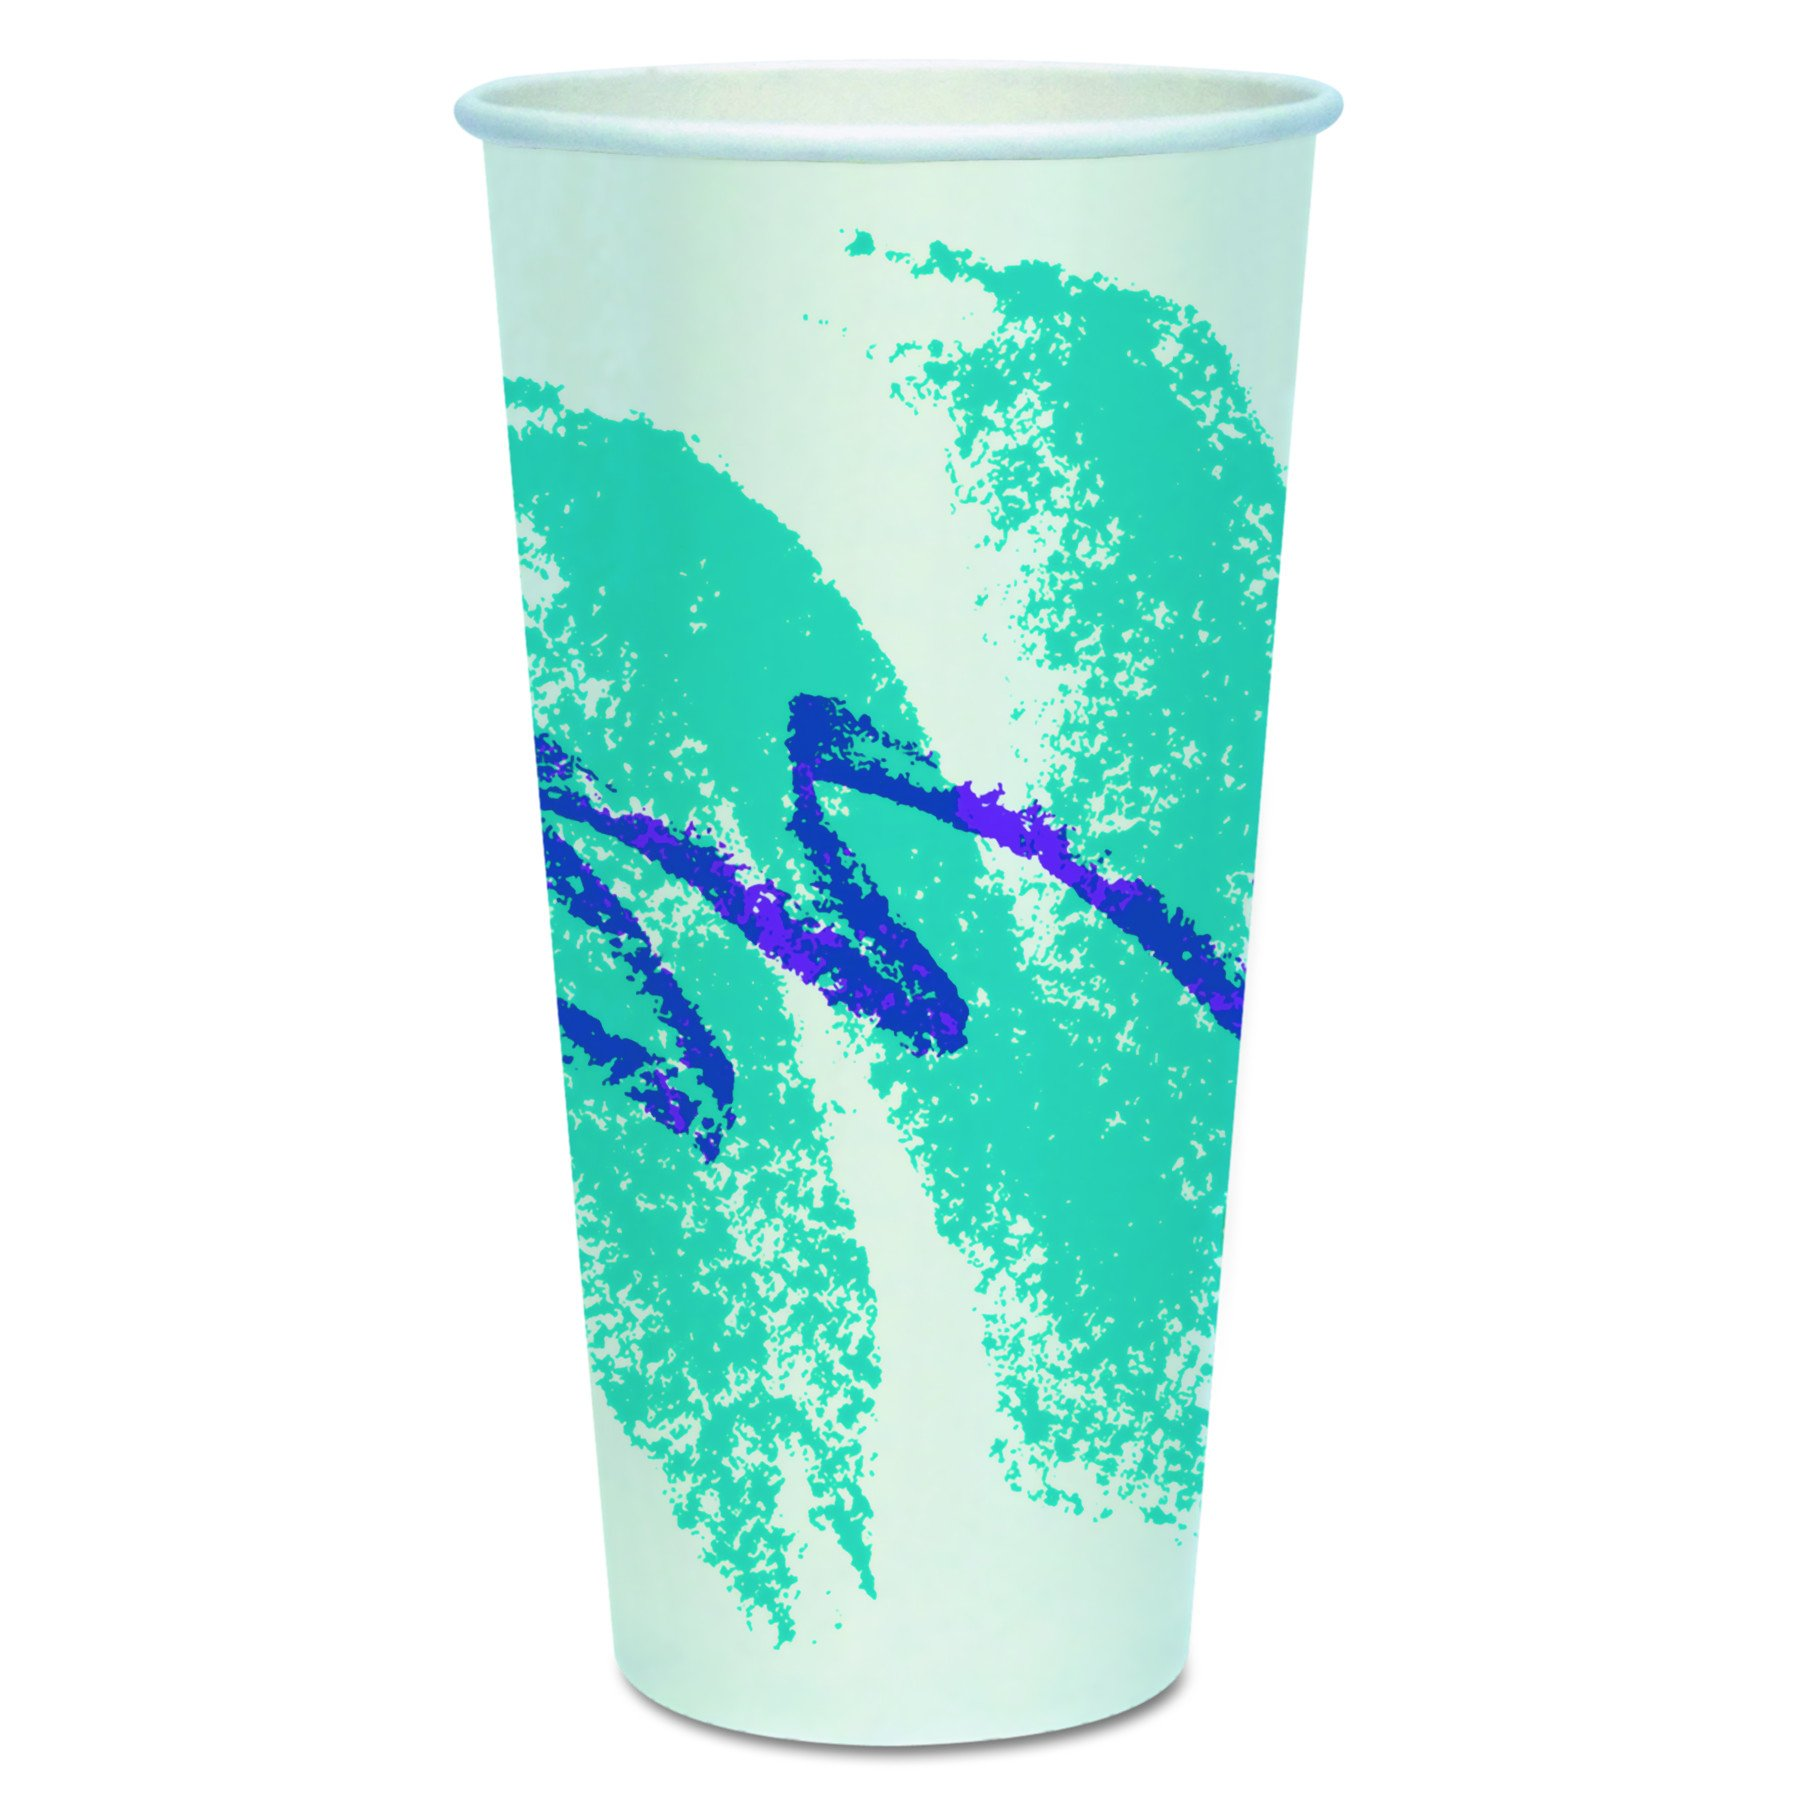 SOLO Cup Company RP24PJ Double Sided Poly Paper Cold Cups, 24 Oz, Jazz Design, Pack of 50 (Case of 20 Packs)